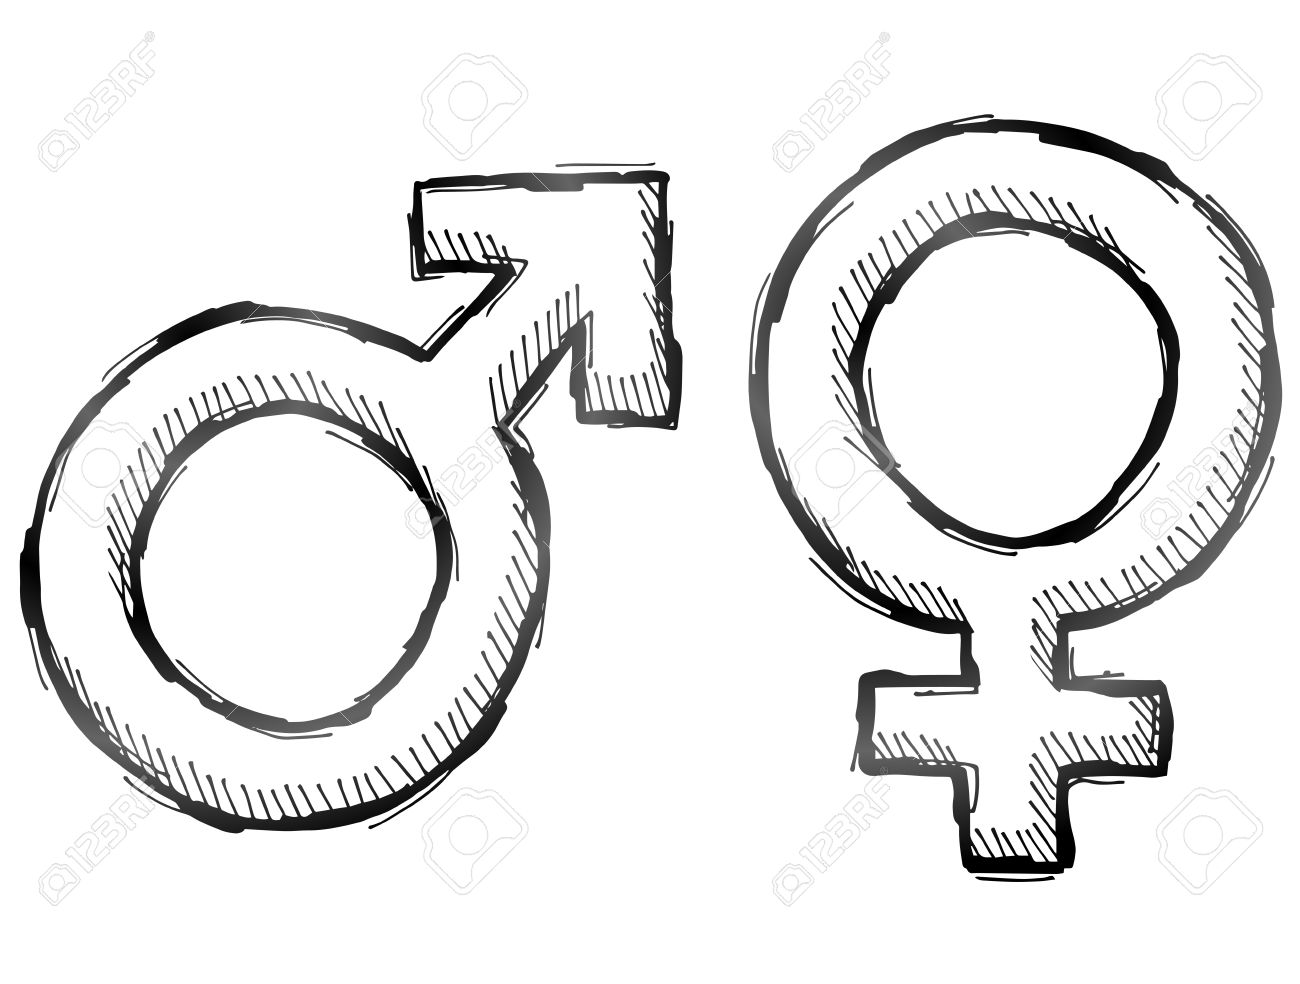 Hand Drawn Gender Symbols Sketch Of Man And Woman Signs In Doodle